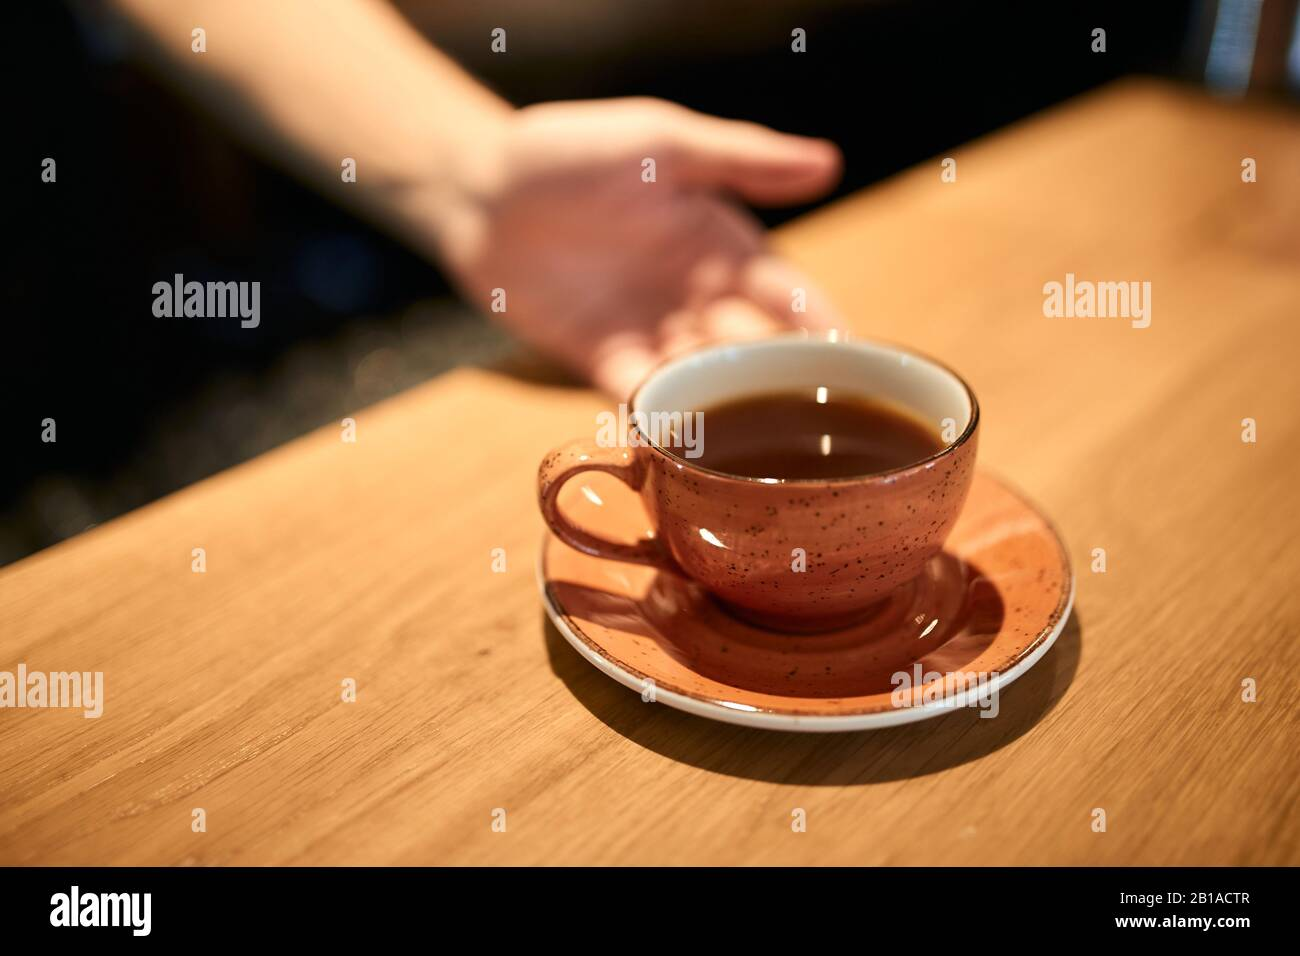 Man Offers Good Hot Tea For Tea Lovers Good Morning Beverage For Mood Close Up Photo Help Yourself Stock Photo Alamy